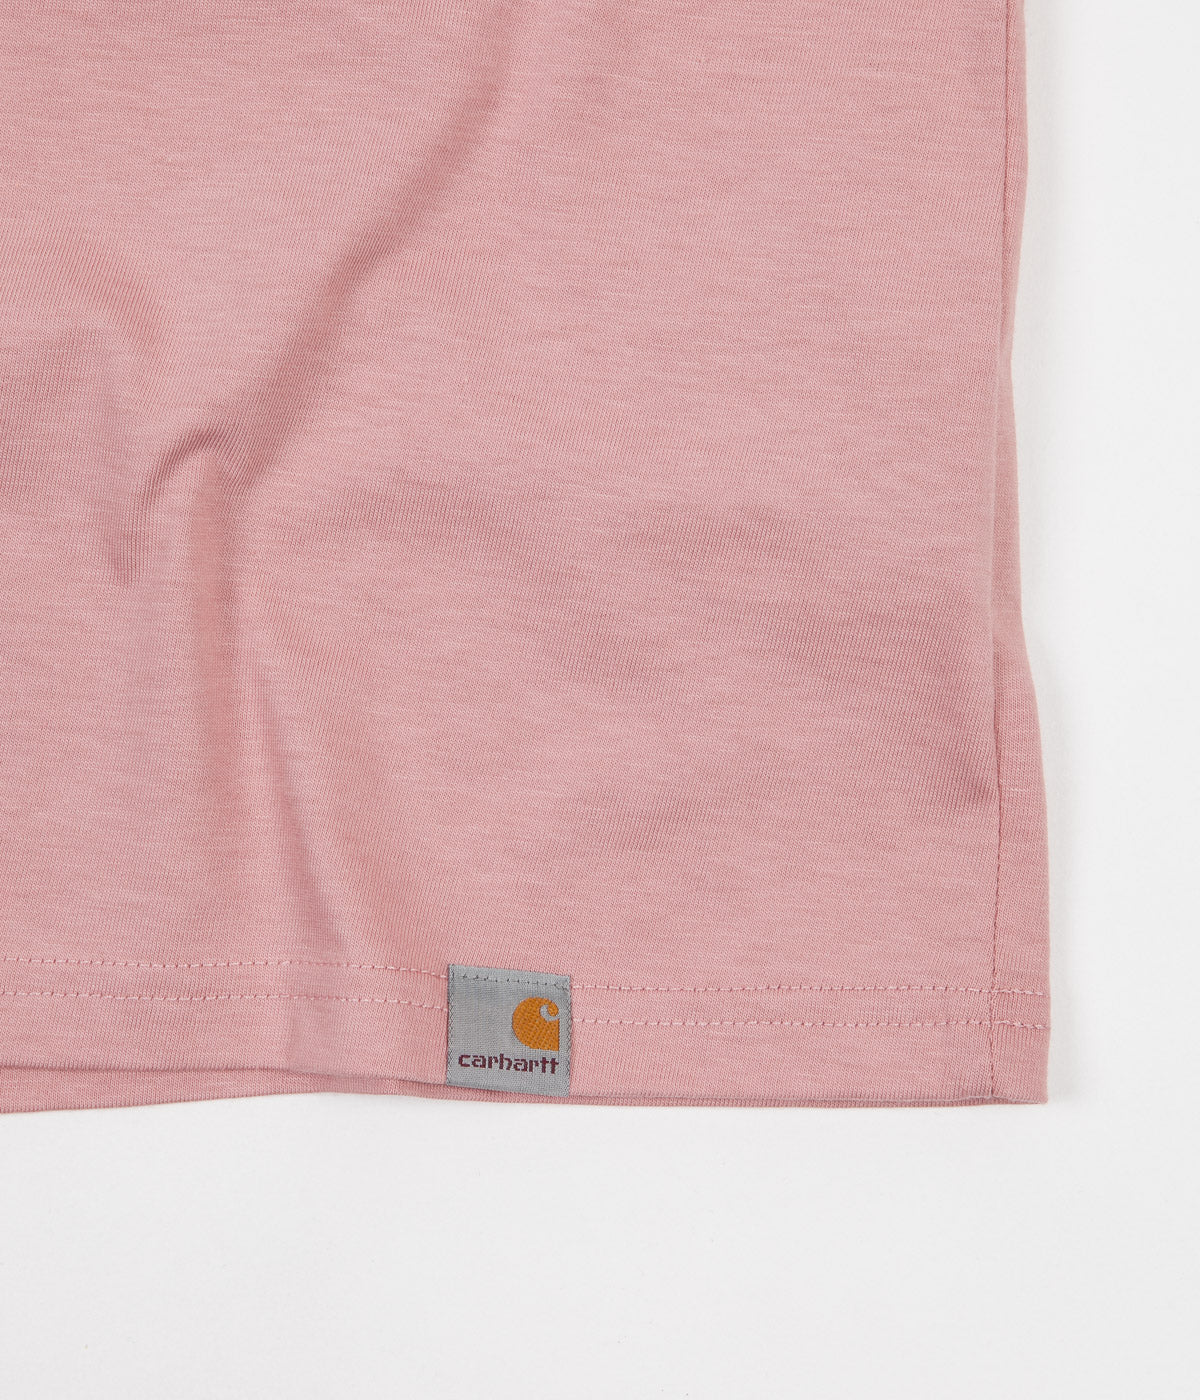 Carhartt True Love T-Shirt - Soft Rose / Black